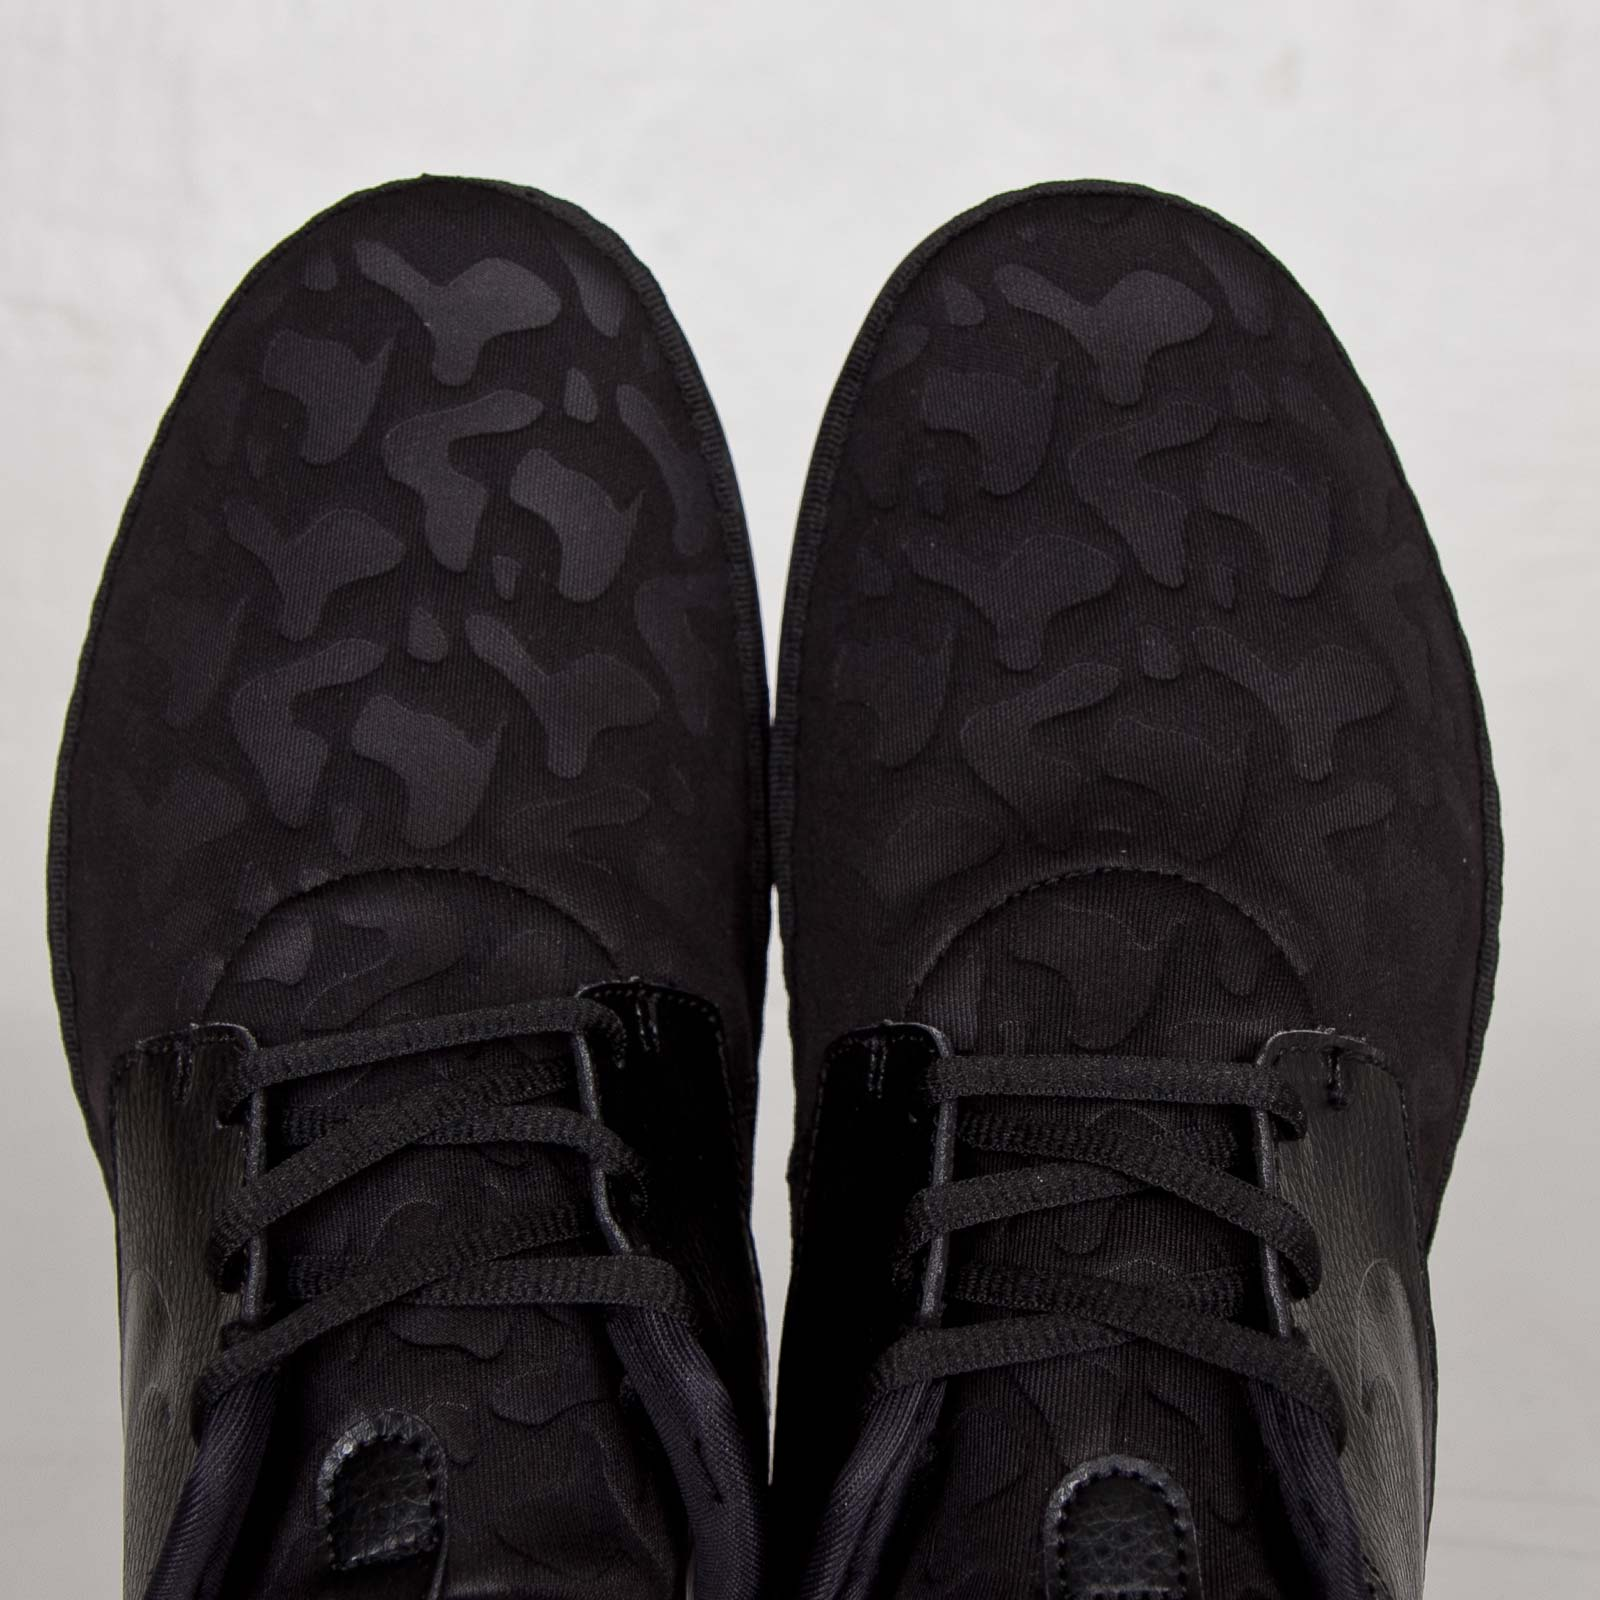 a54c06a3df79 Nike Solarsoft Moccasin PO QS - 728857-090 - Sneakersnstuff ...